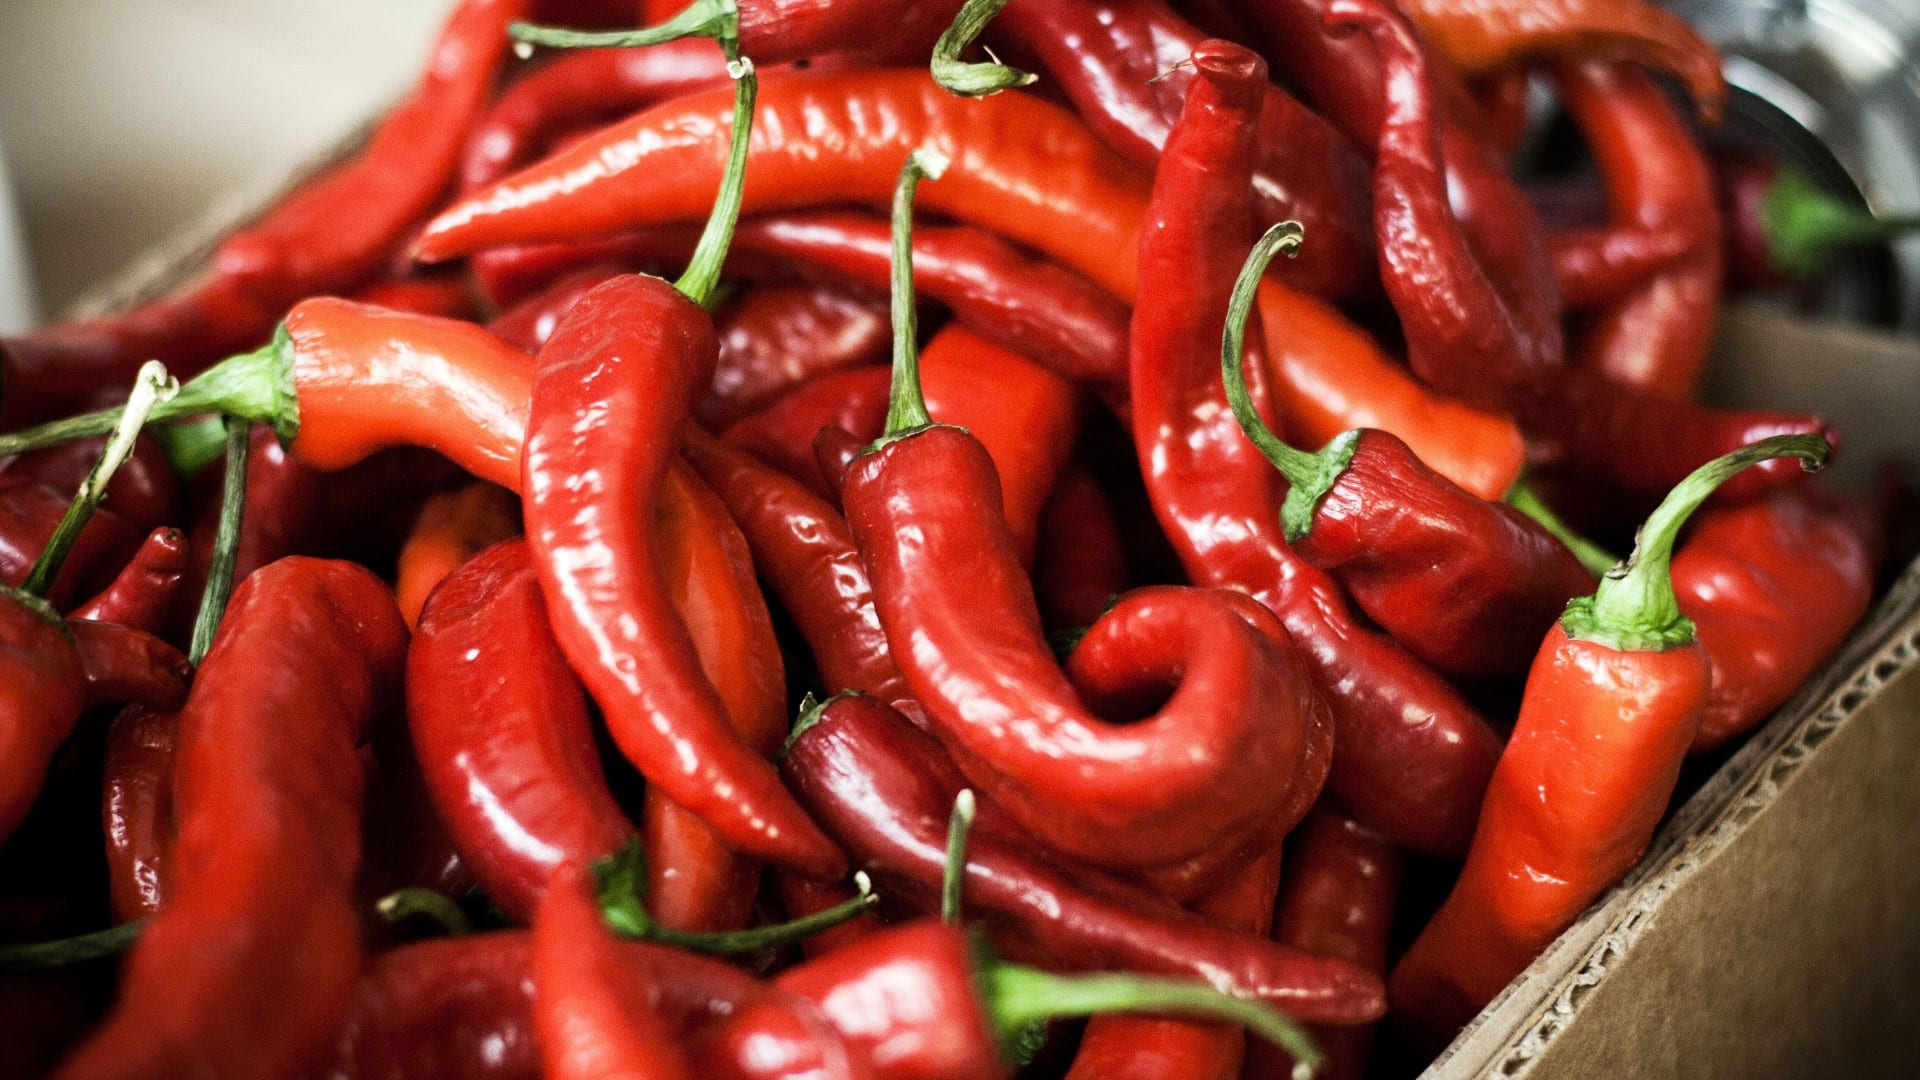 Chemical in Paprika Reduce Appetite And Increases Calorie Burning